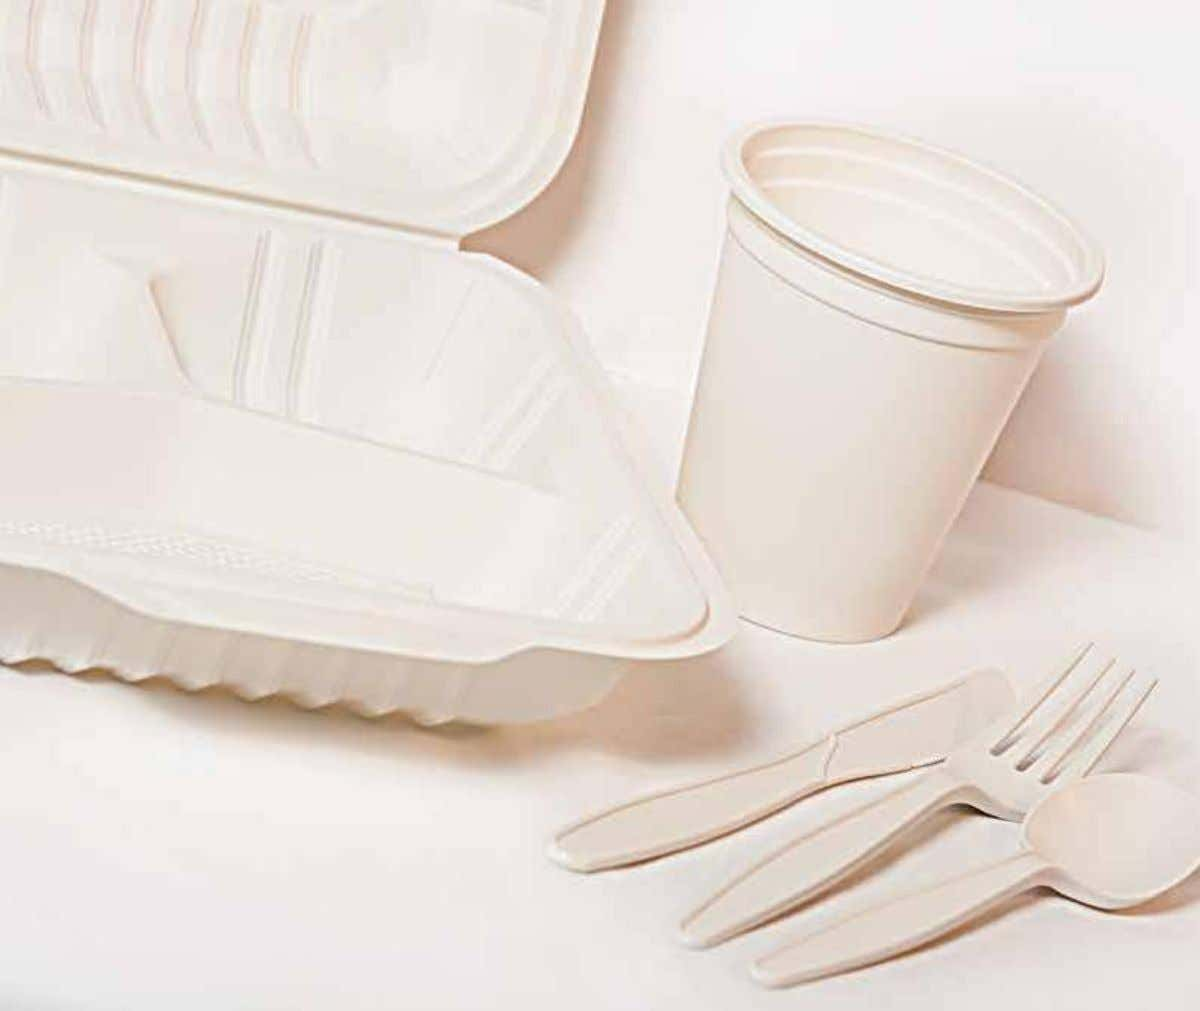 ThermoformedProducts Cups, trays, food containers, bowls, plates